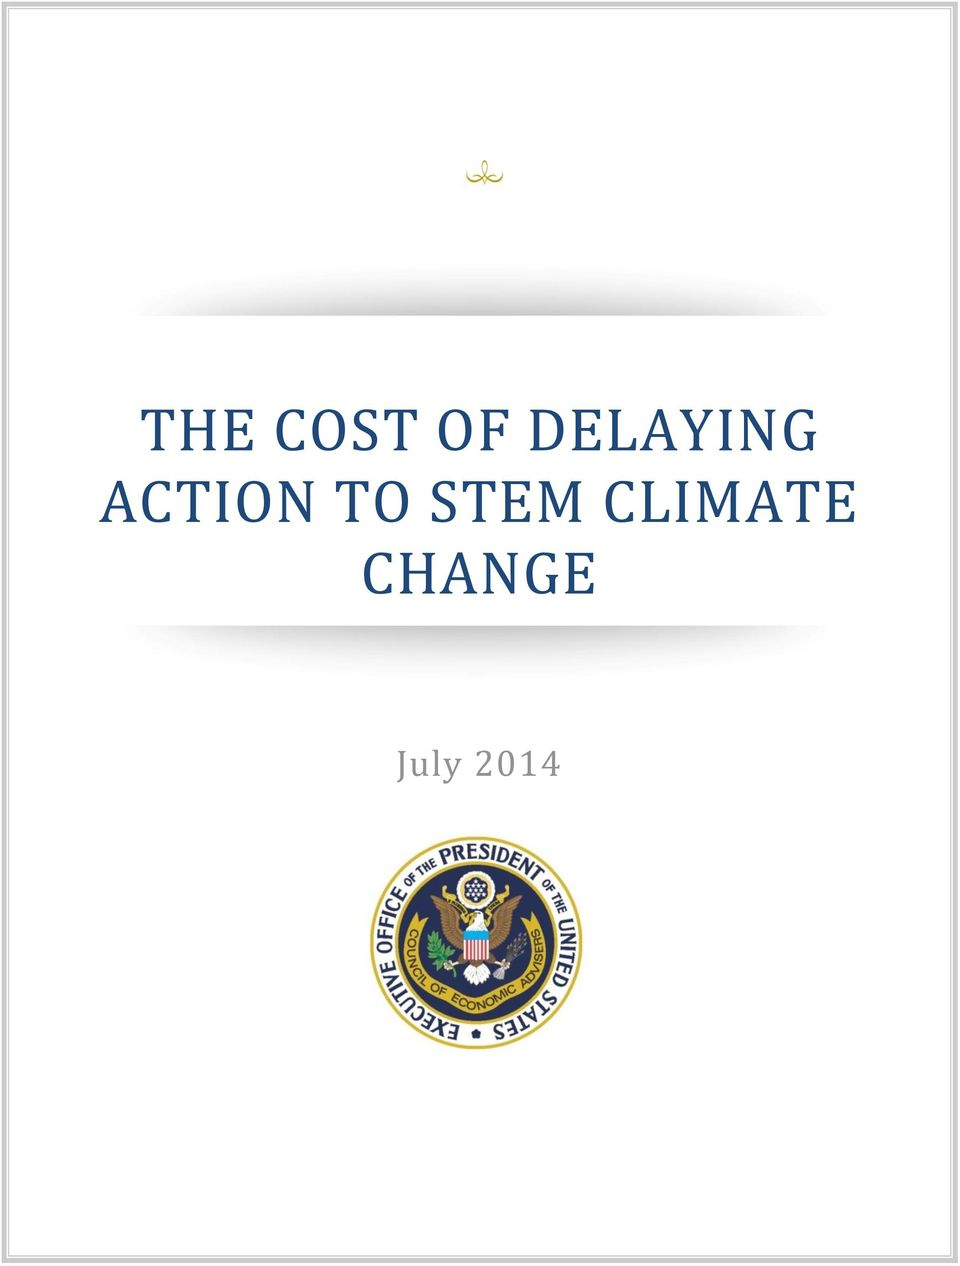 STEM CLIMATE CHANGE The